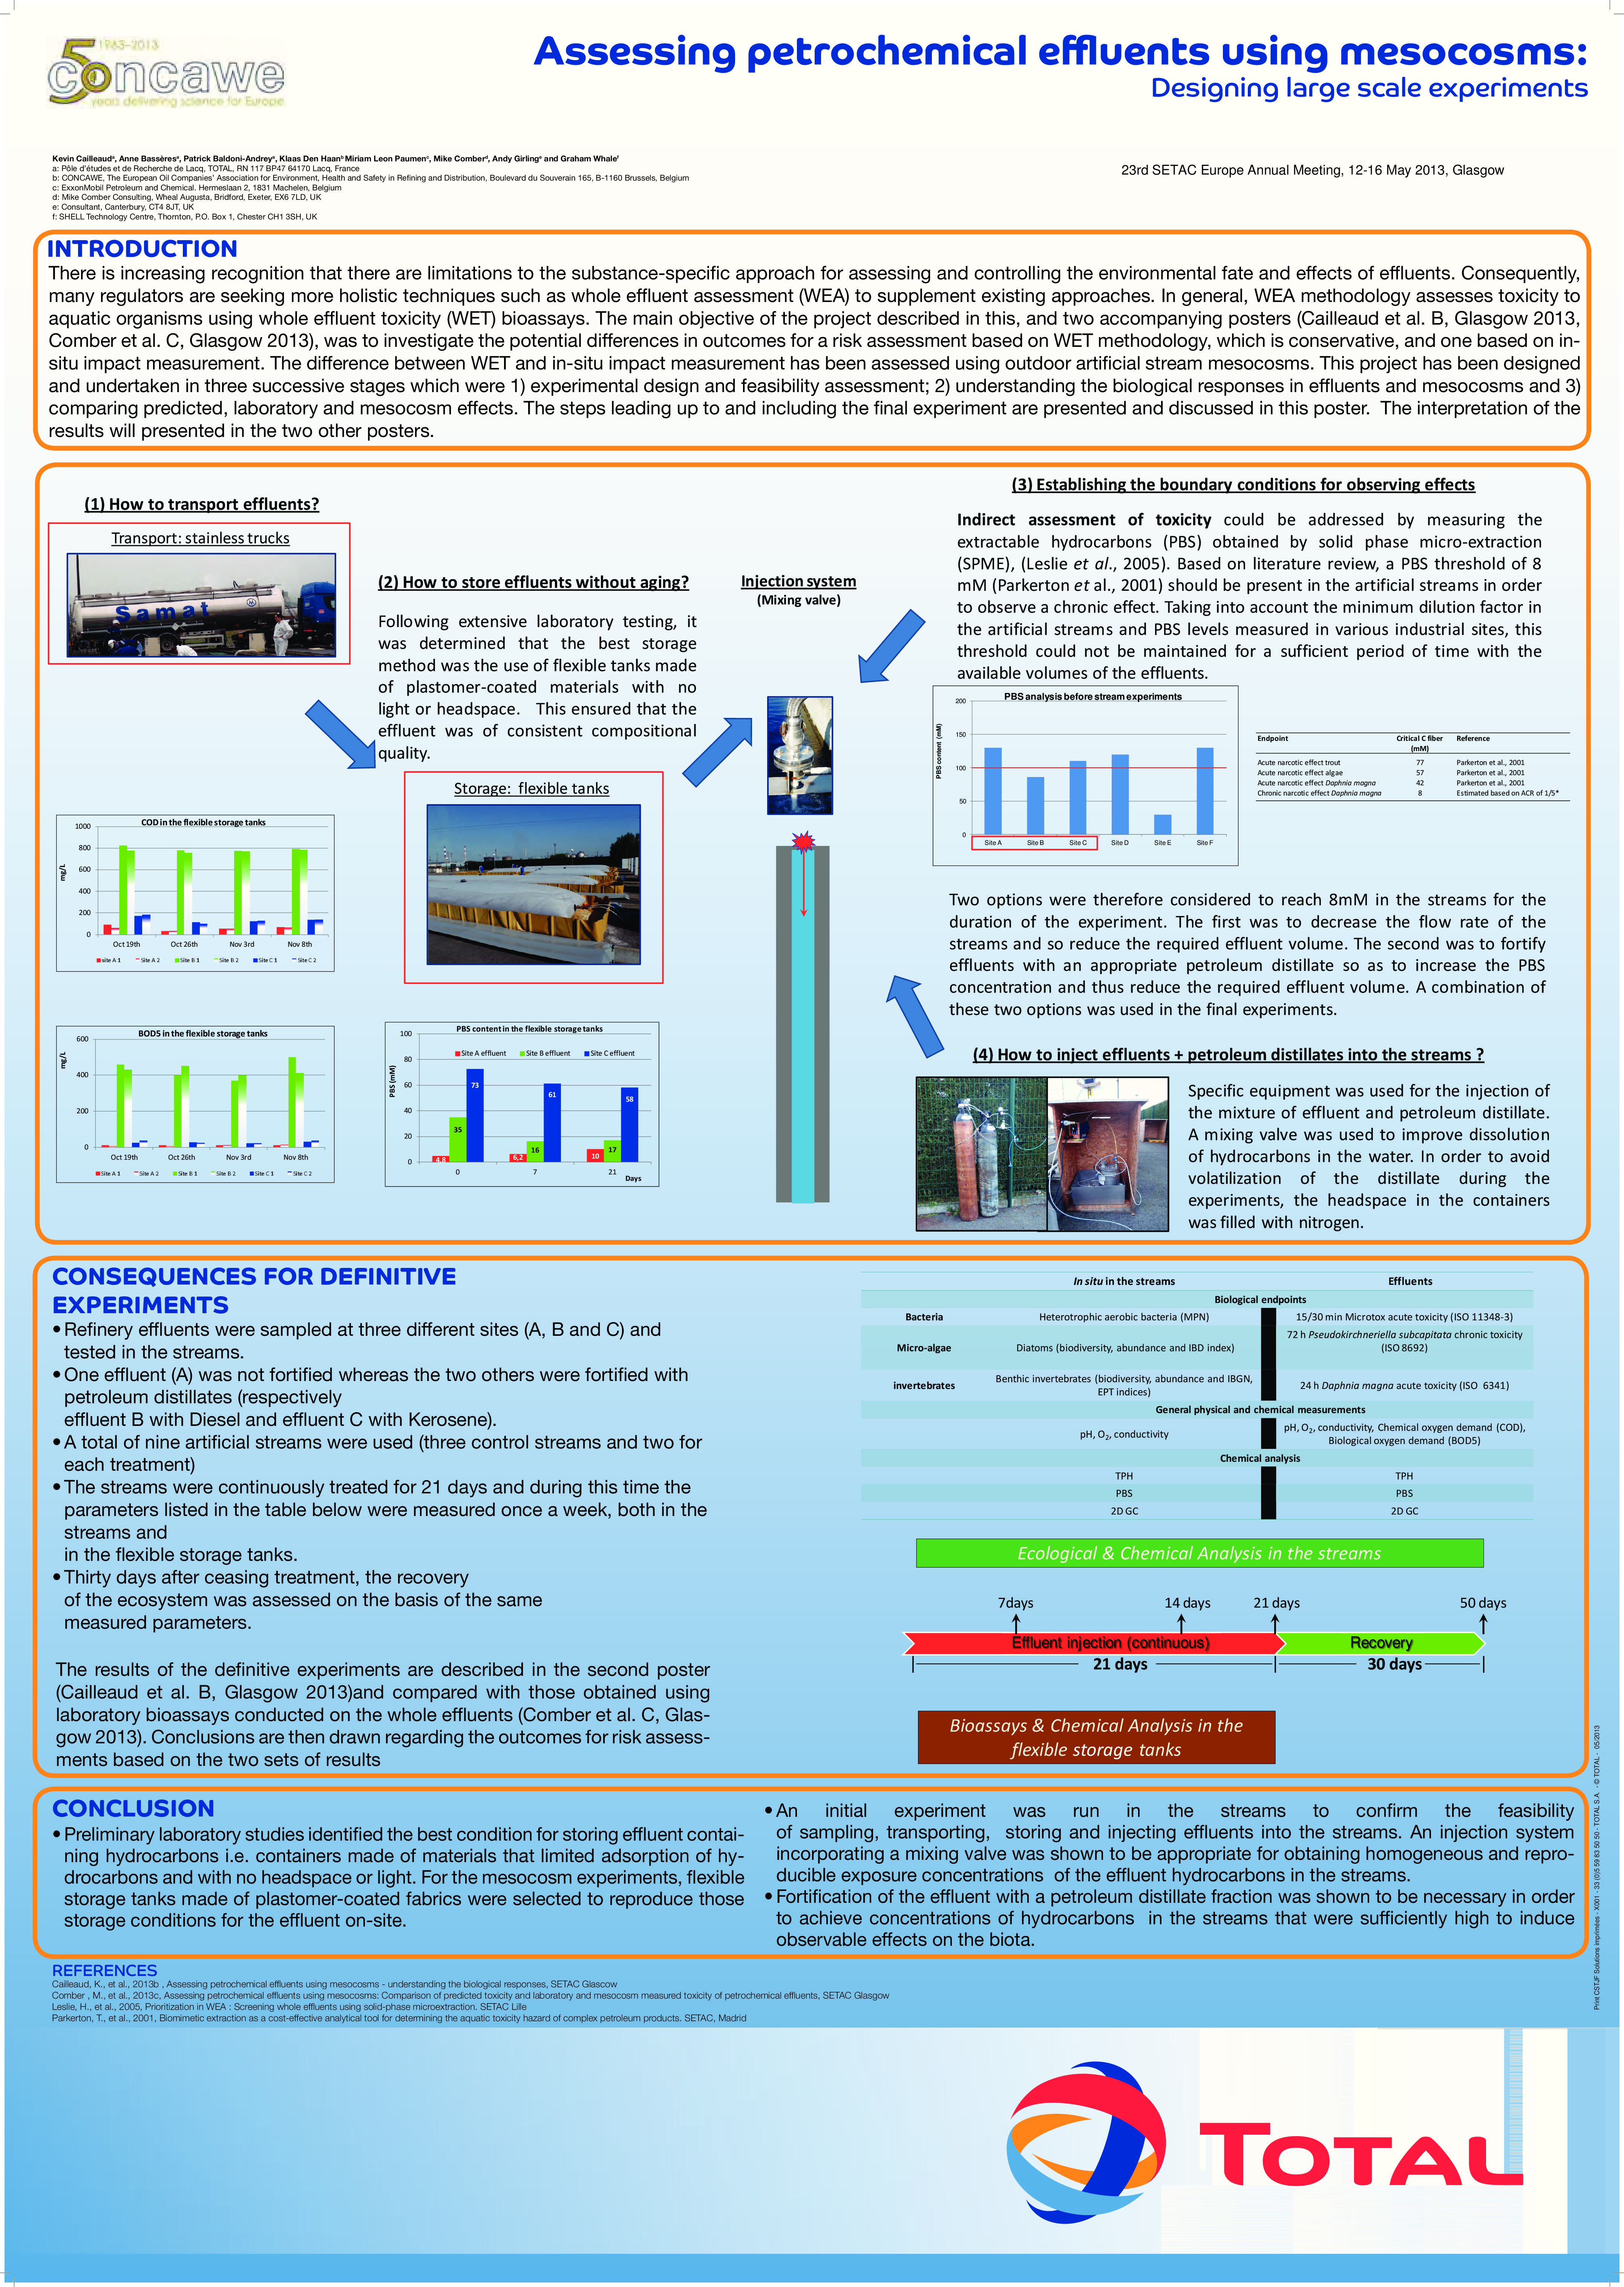 Assessing Petrochemical Effluents Using Mesocosms Designing Large Scale Experiments Concawe